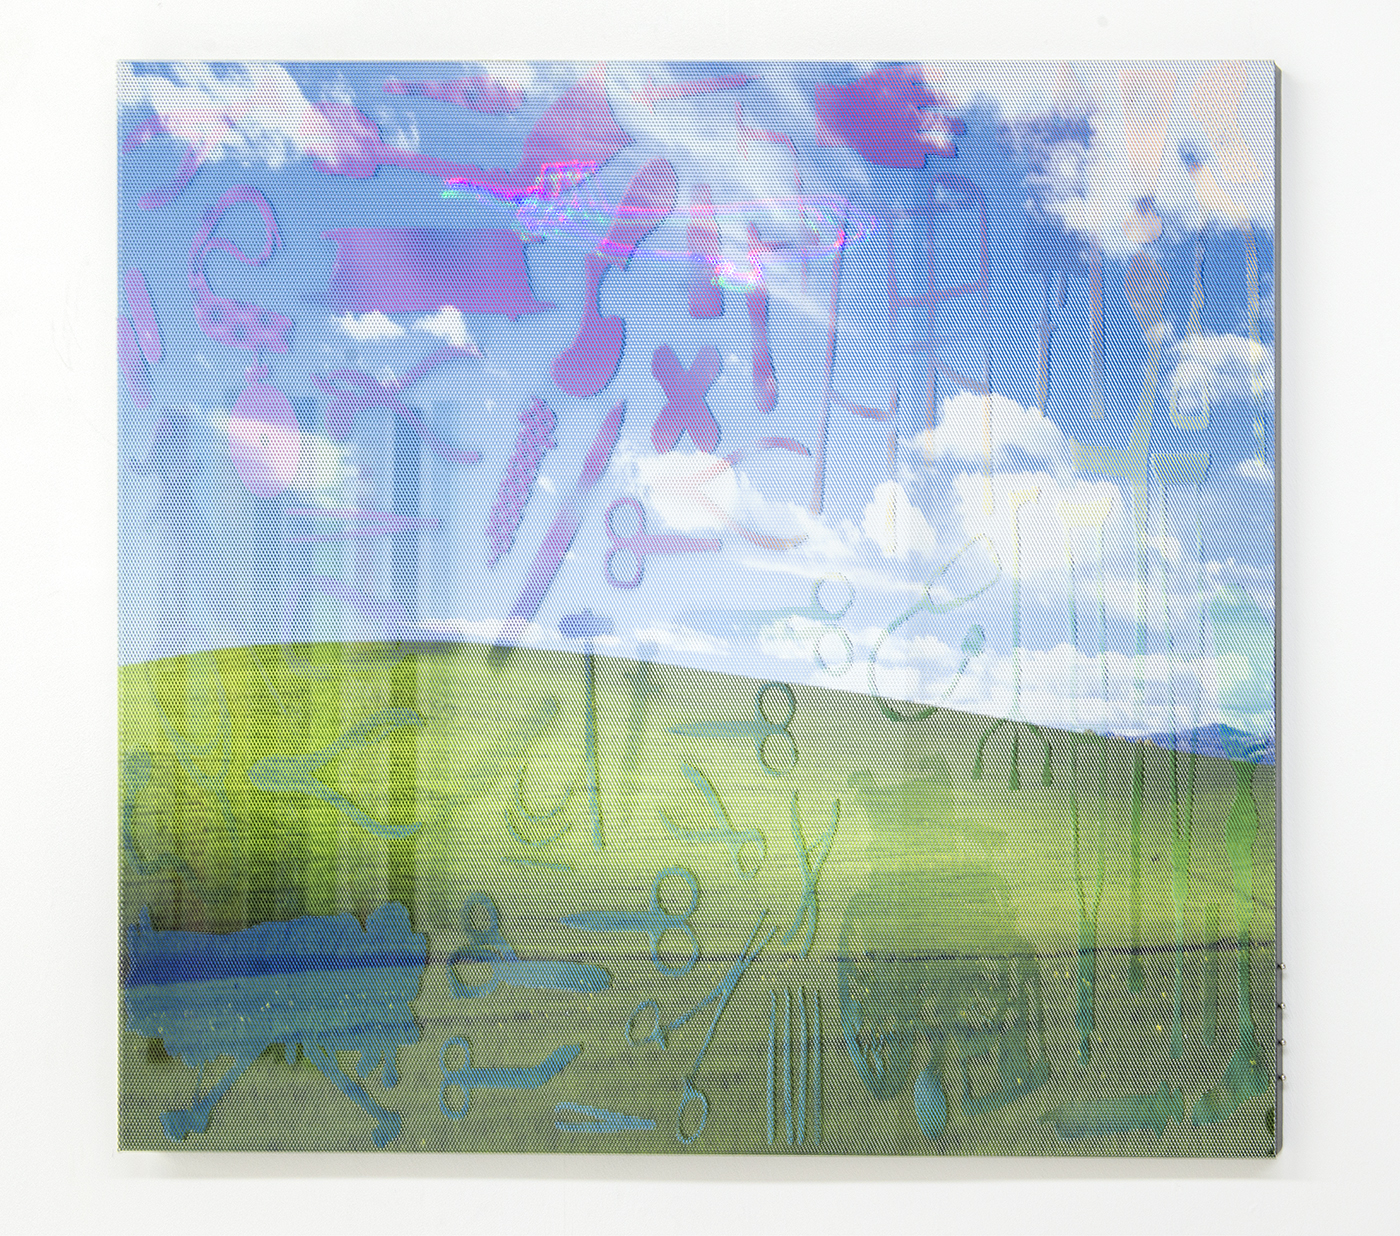 "James Cordas, ""Sharp Park,"" 2015. 30 x 36''. Steel, perforated vinyl, mirror, magnets, laser. Image courtesy of et al. gallery and the artist."